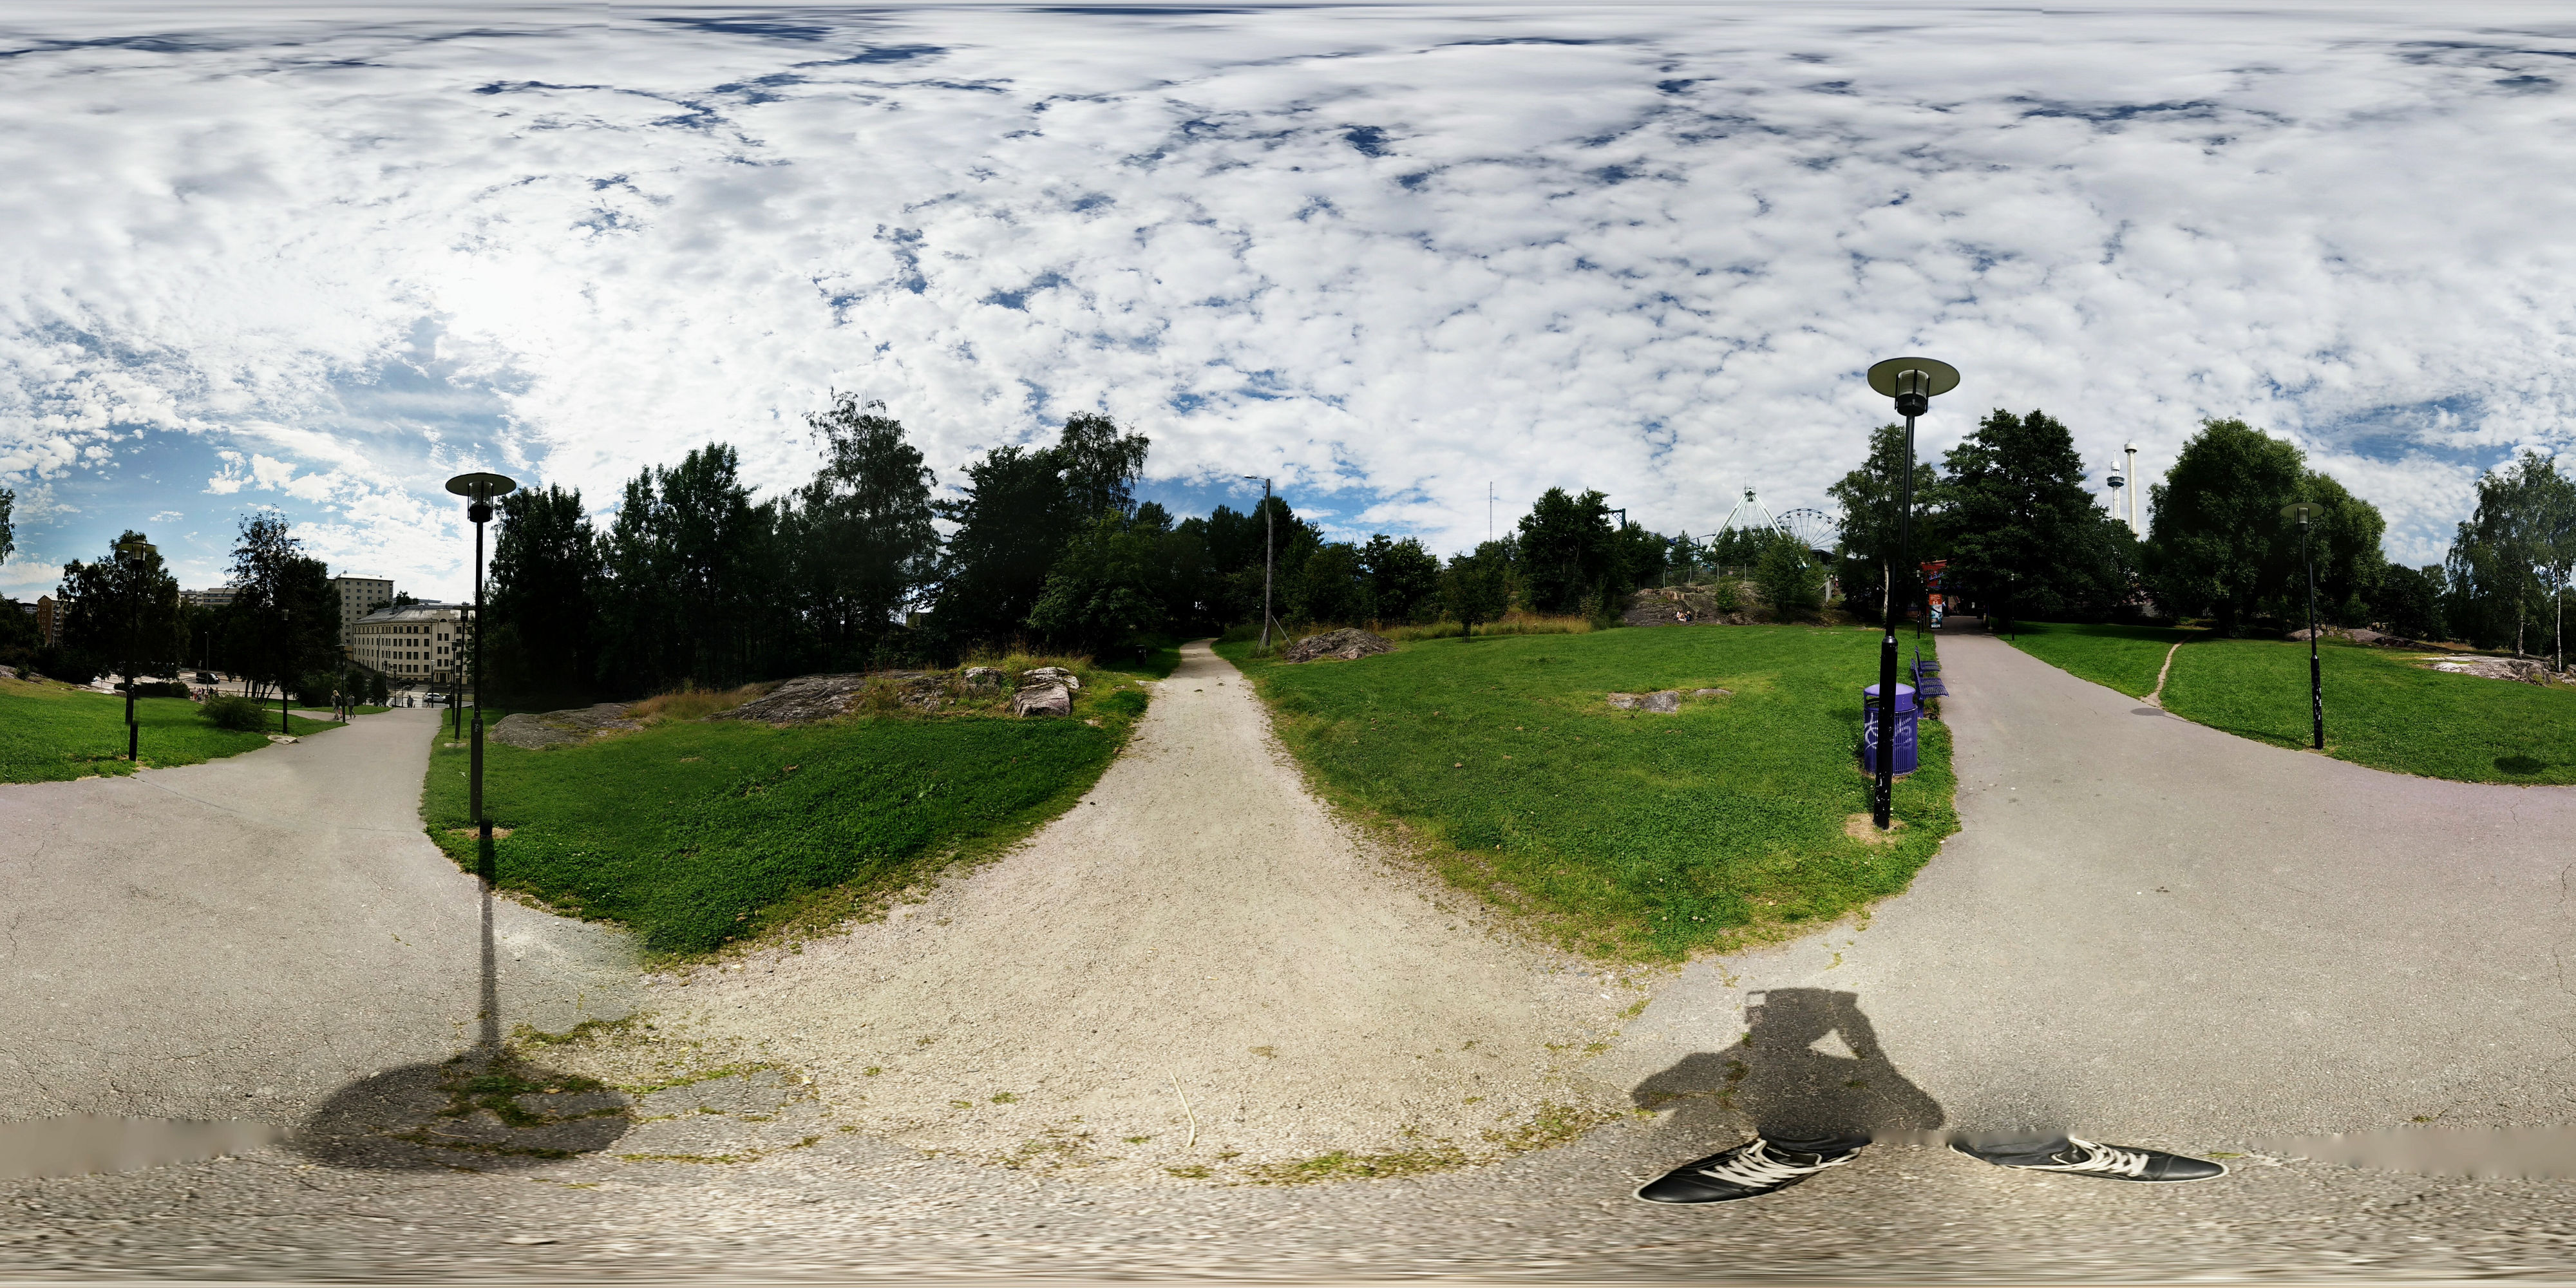 PhotoSphere images as interactive 360° by 180° panoramas